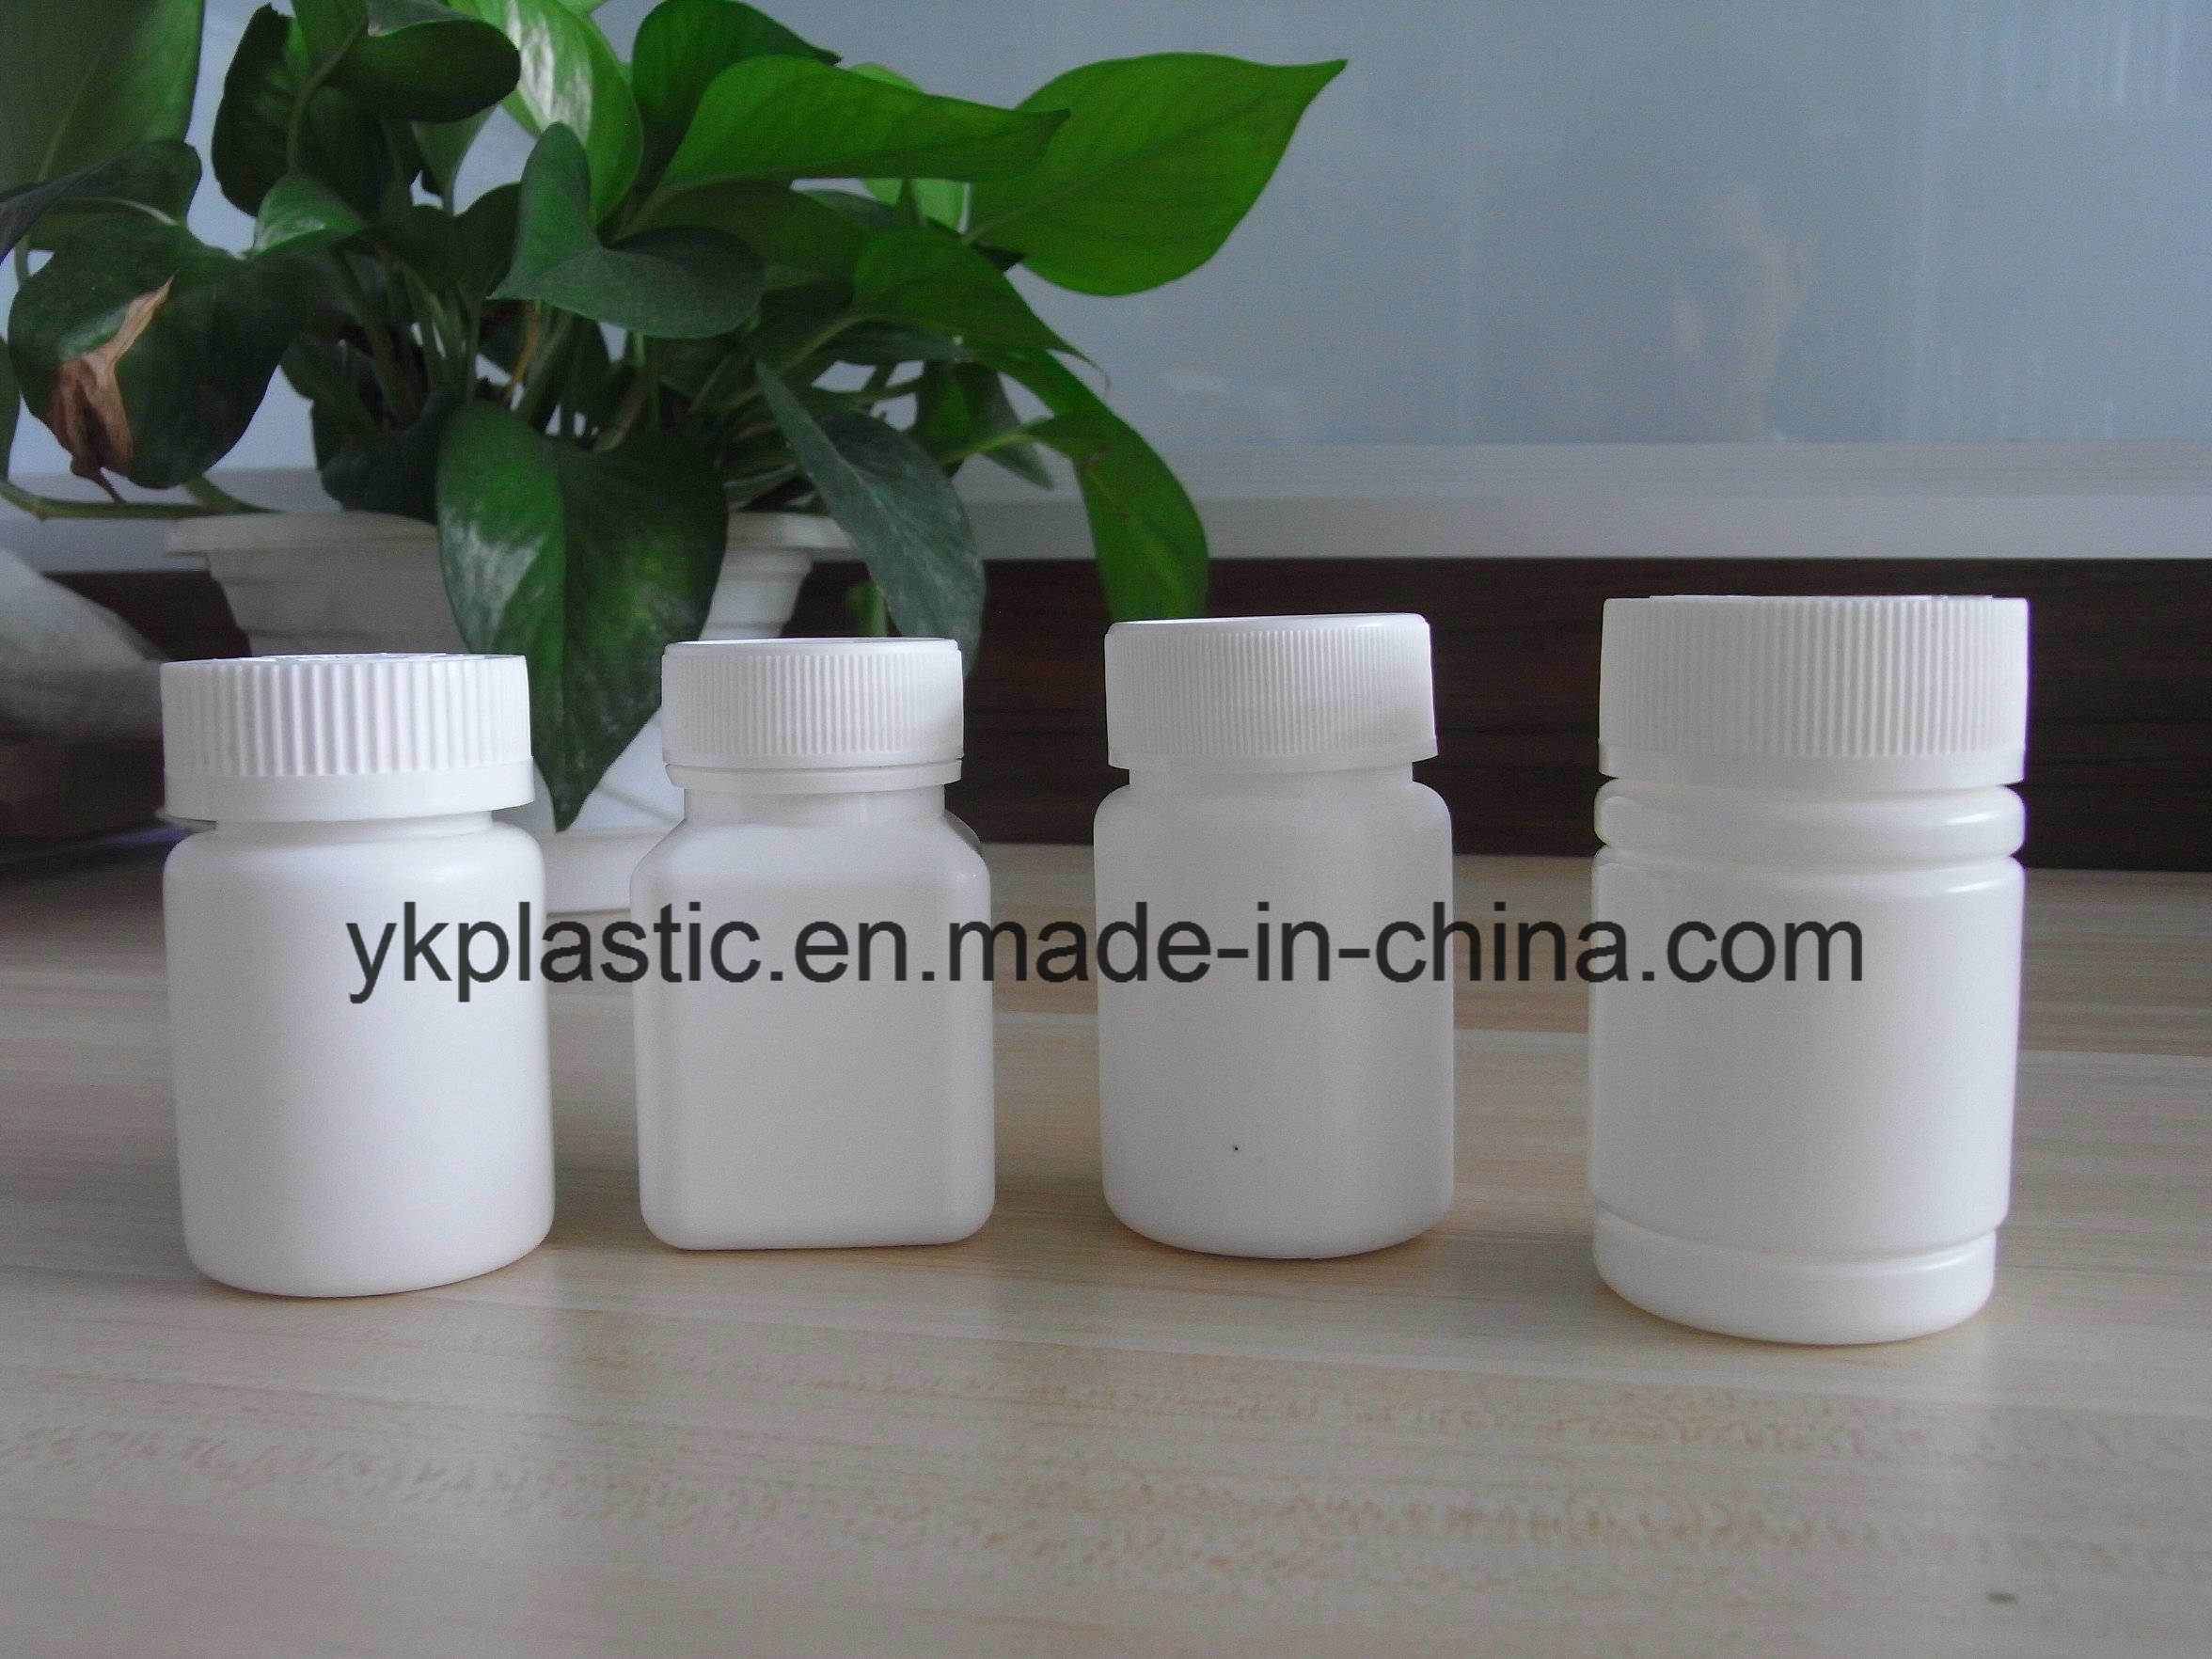 Best Quality Medicine Bottle for Health Care Capsule/Pill/Tablet